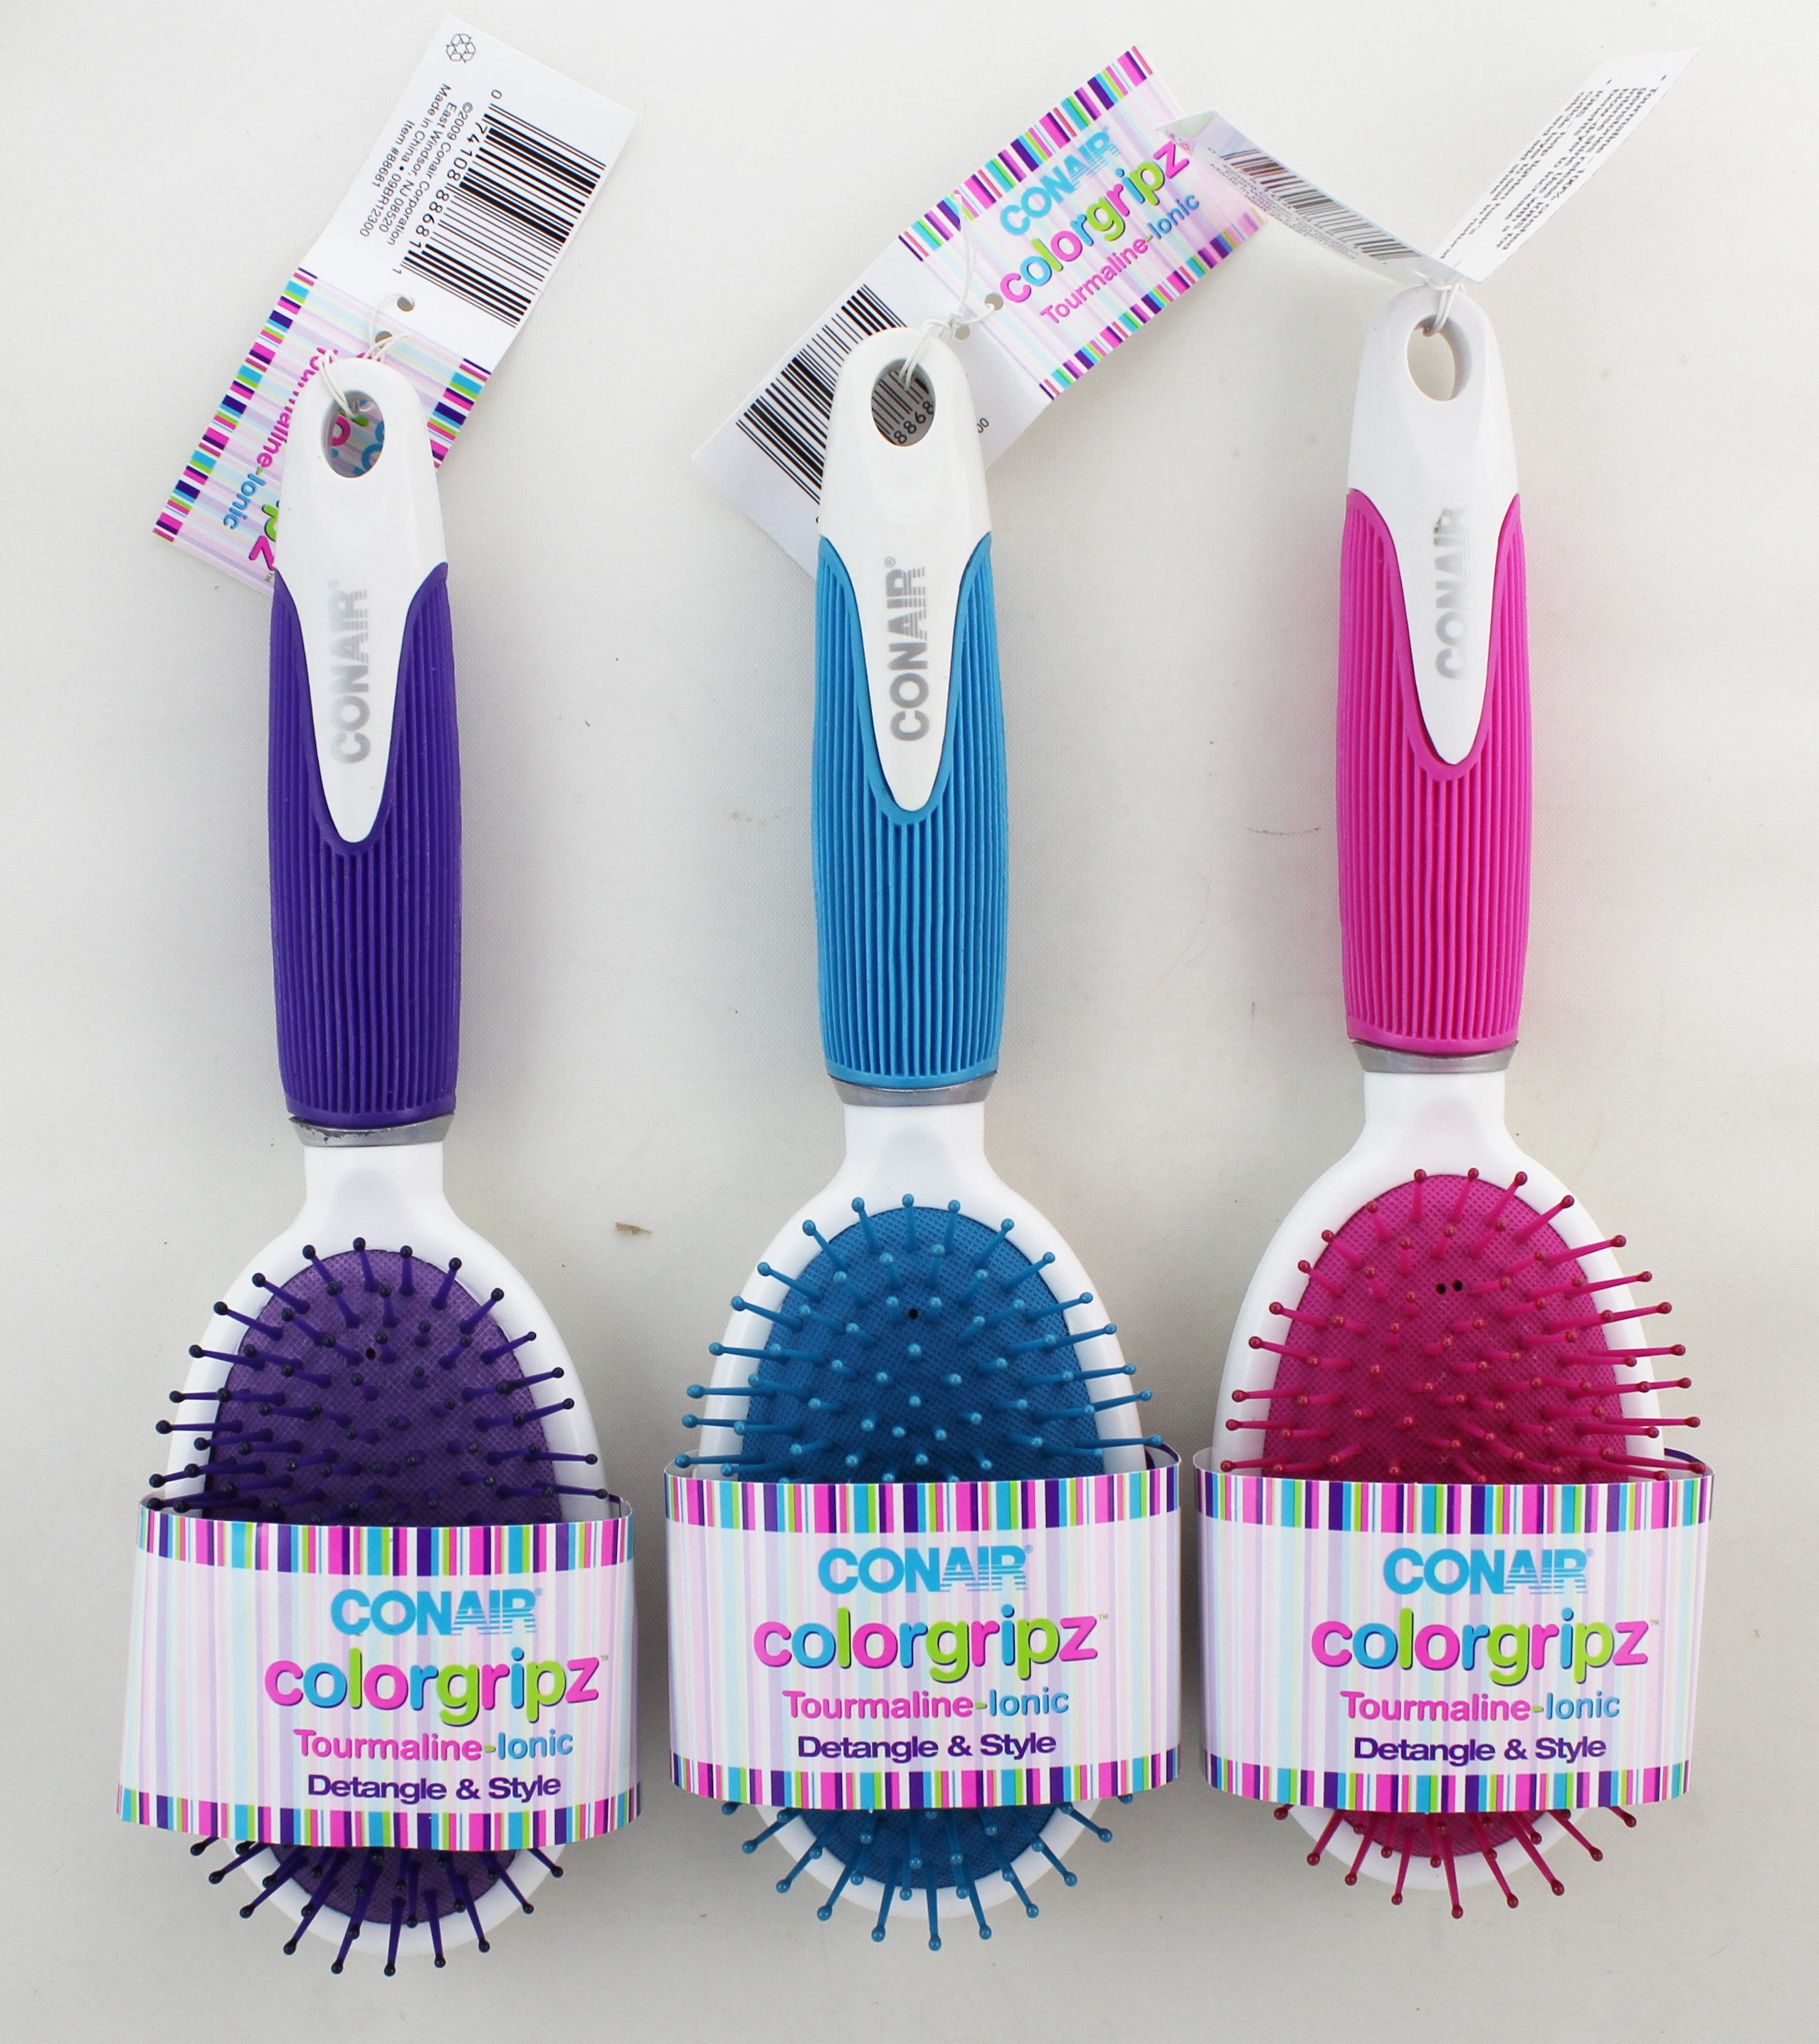 Conair ColorGripz Oval Cushion Hair Brush